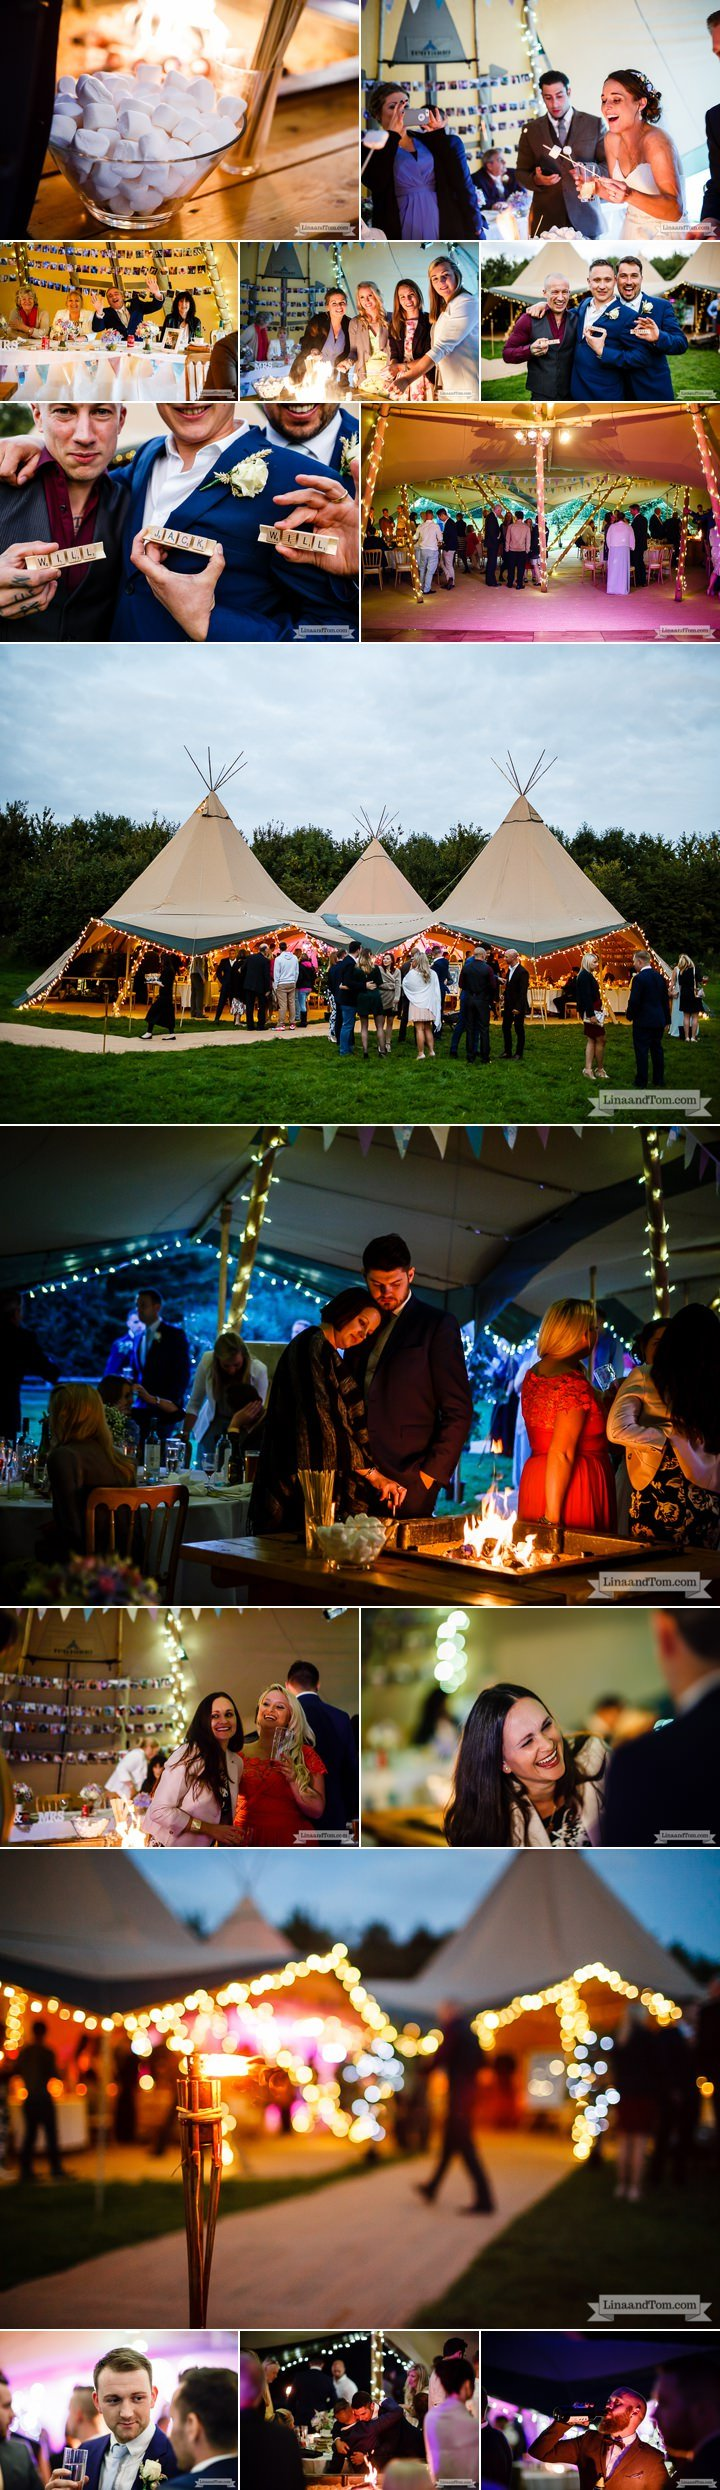 cambridge-summer-tipi-wedding-16